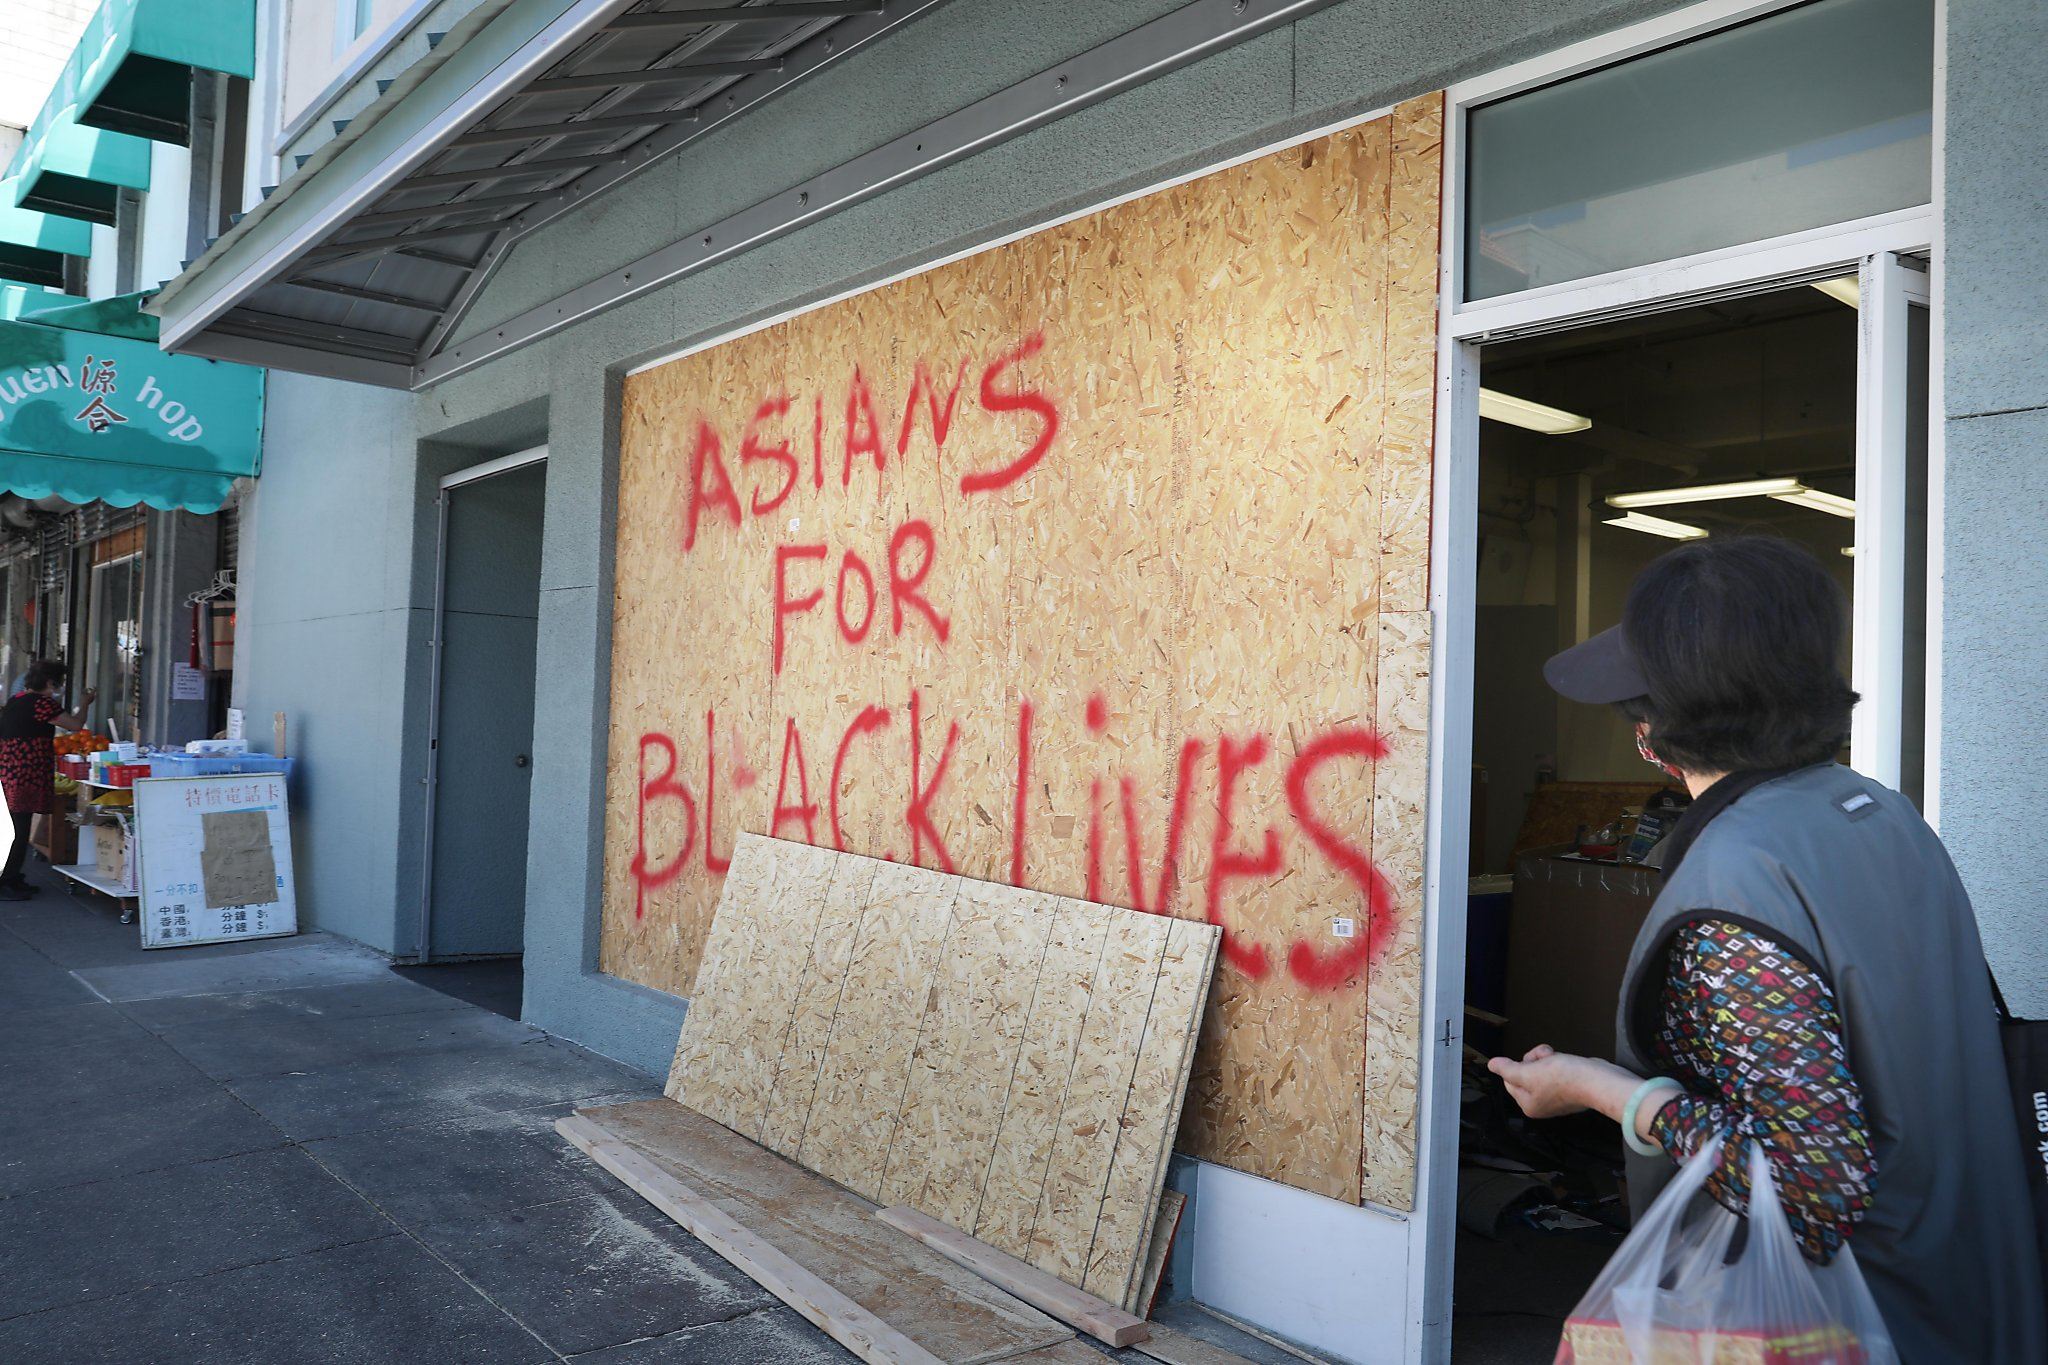 www.sfchronicle.com: Our Asian neighbors are suffering. We need to listen to them